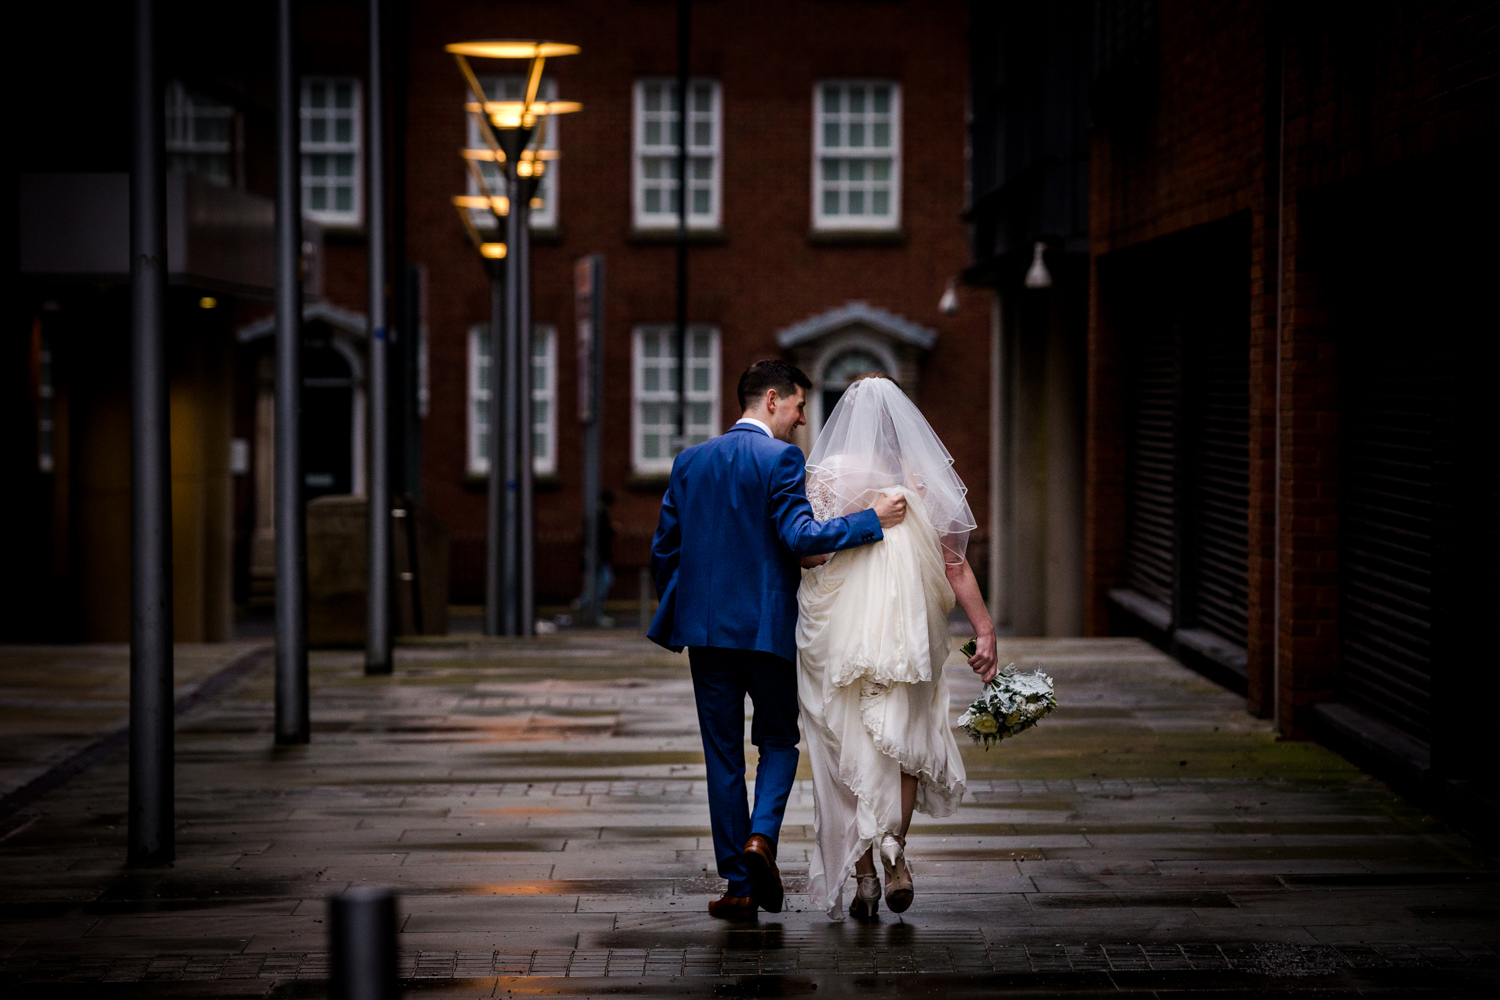 A wedding day walk in rainy Manchester